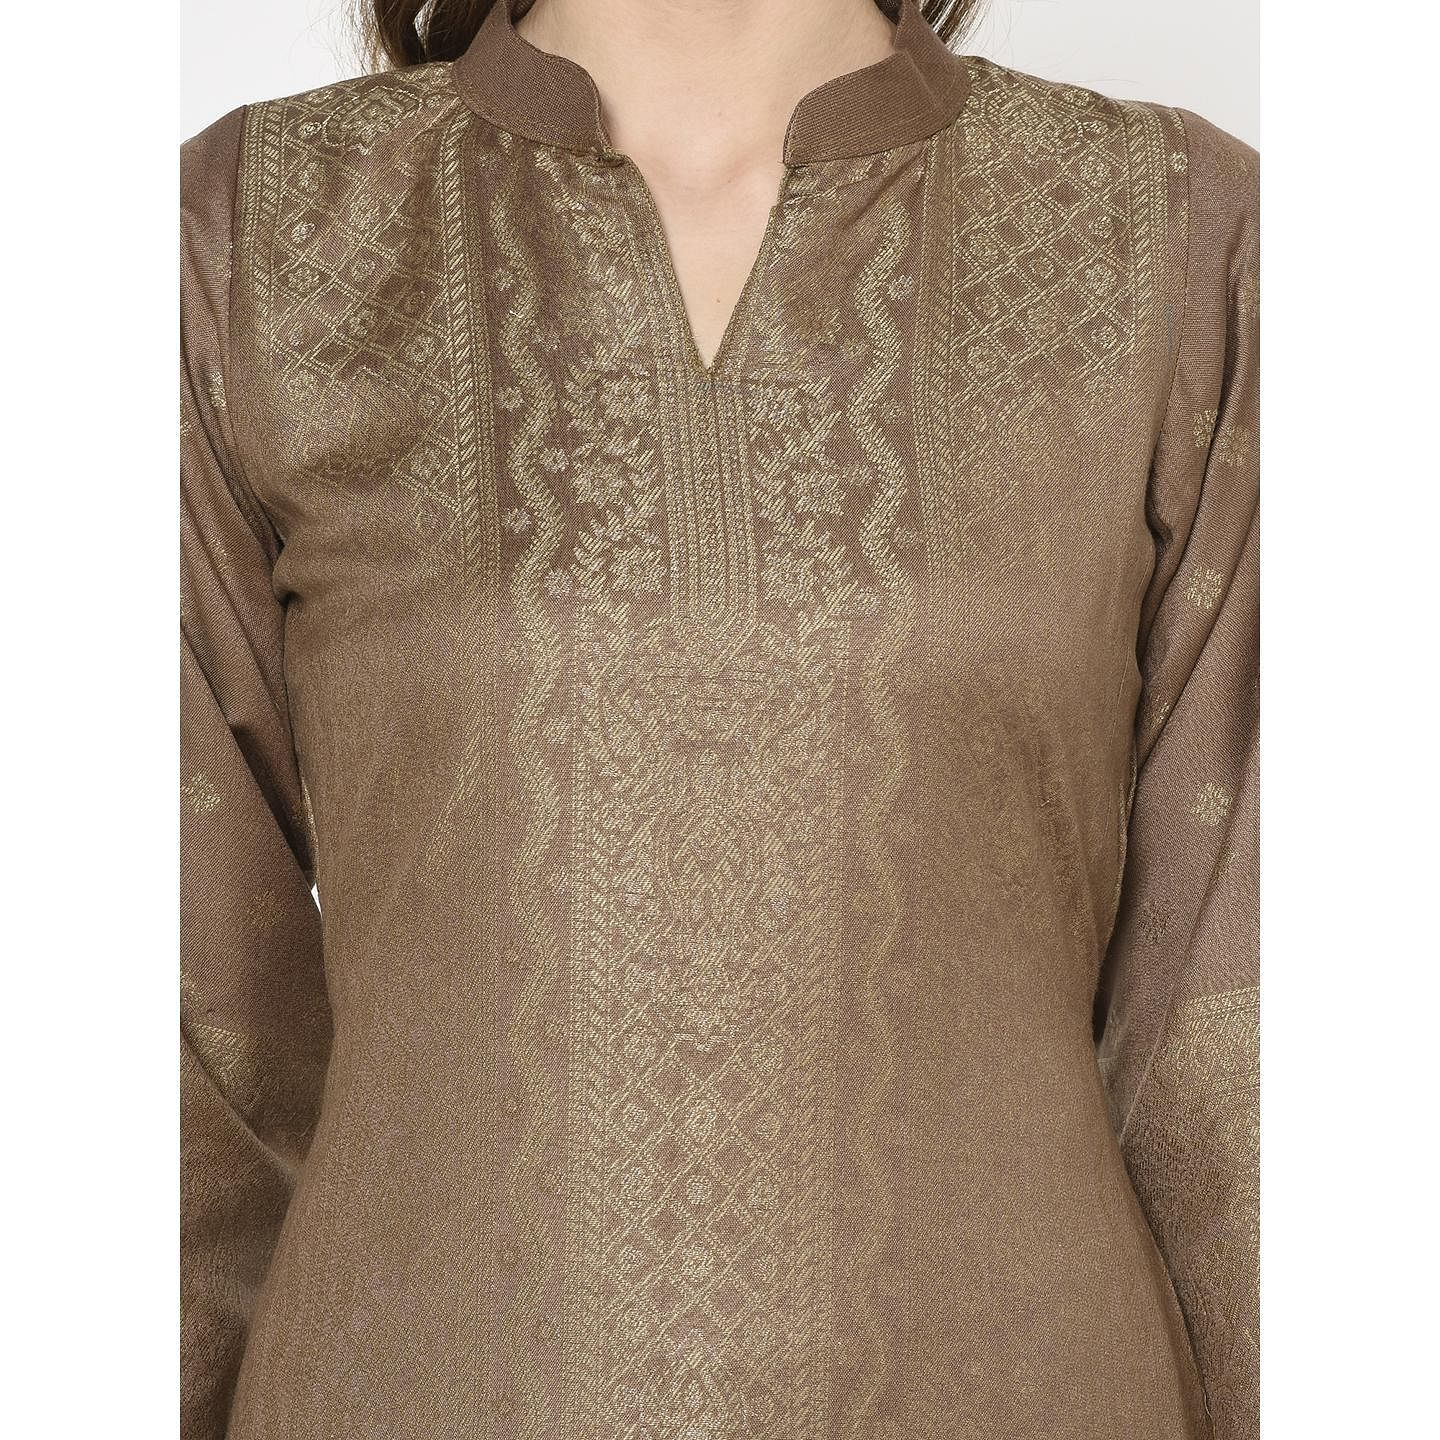 Safaa - Brown Colored Party Wear Printed Acro Wool Dress Material